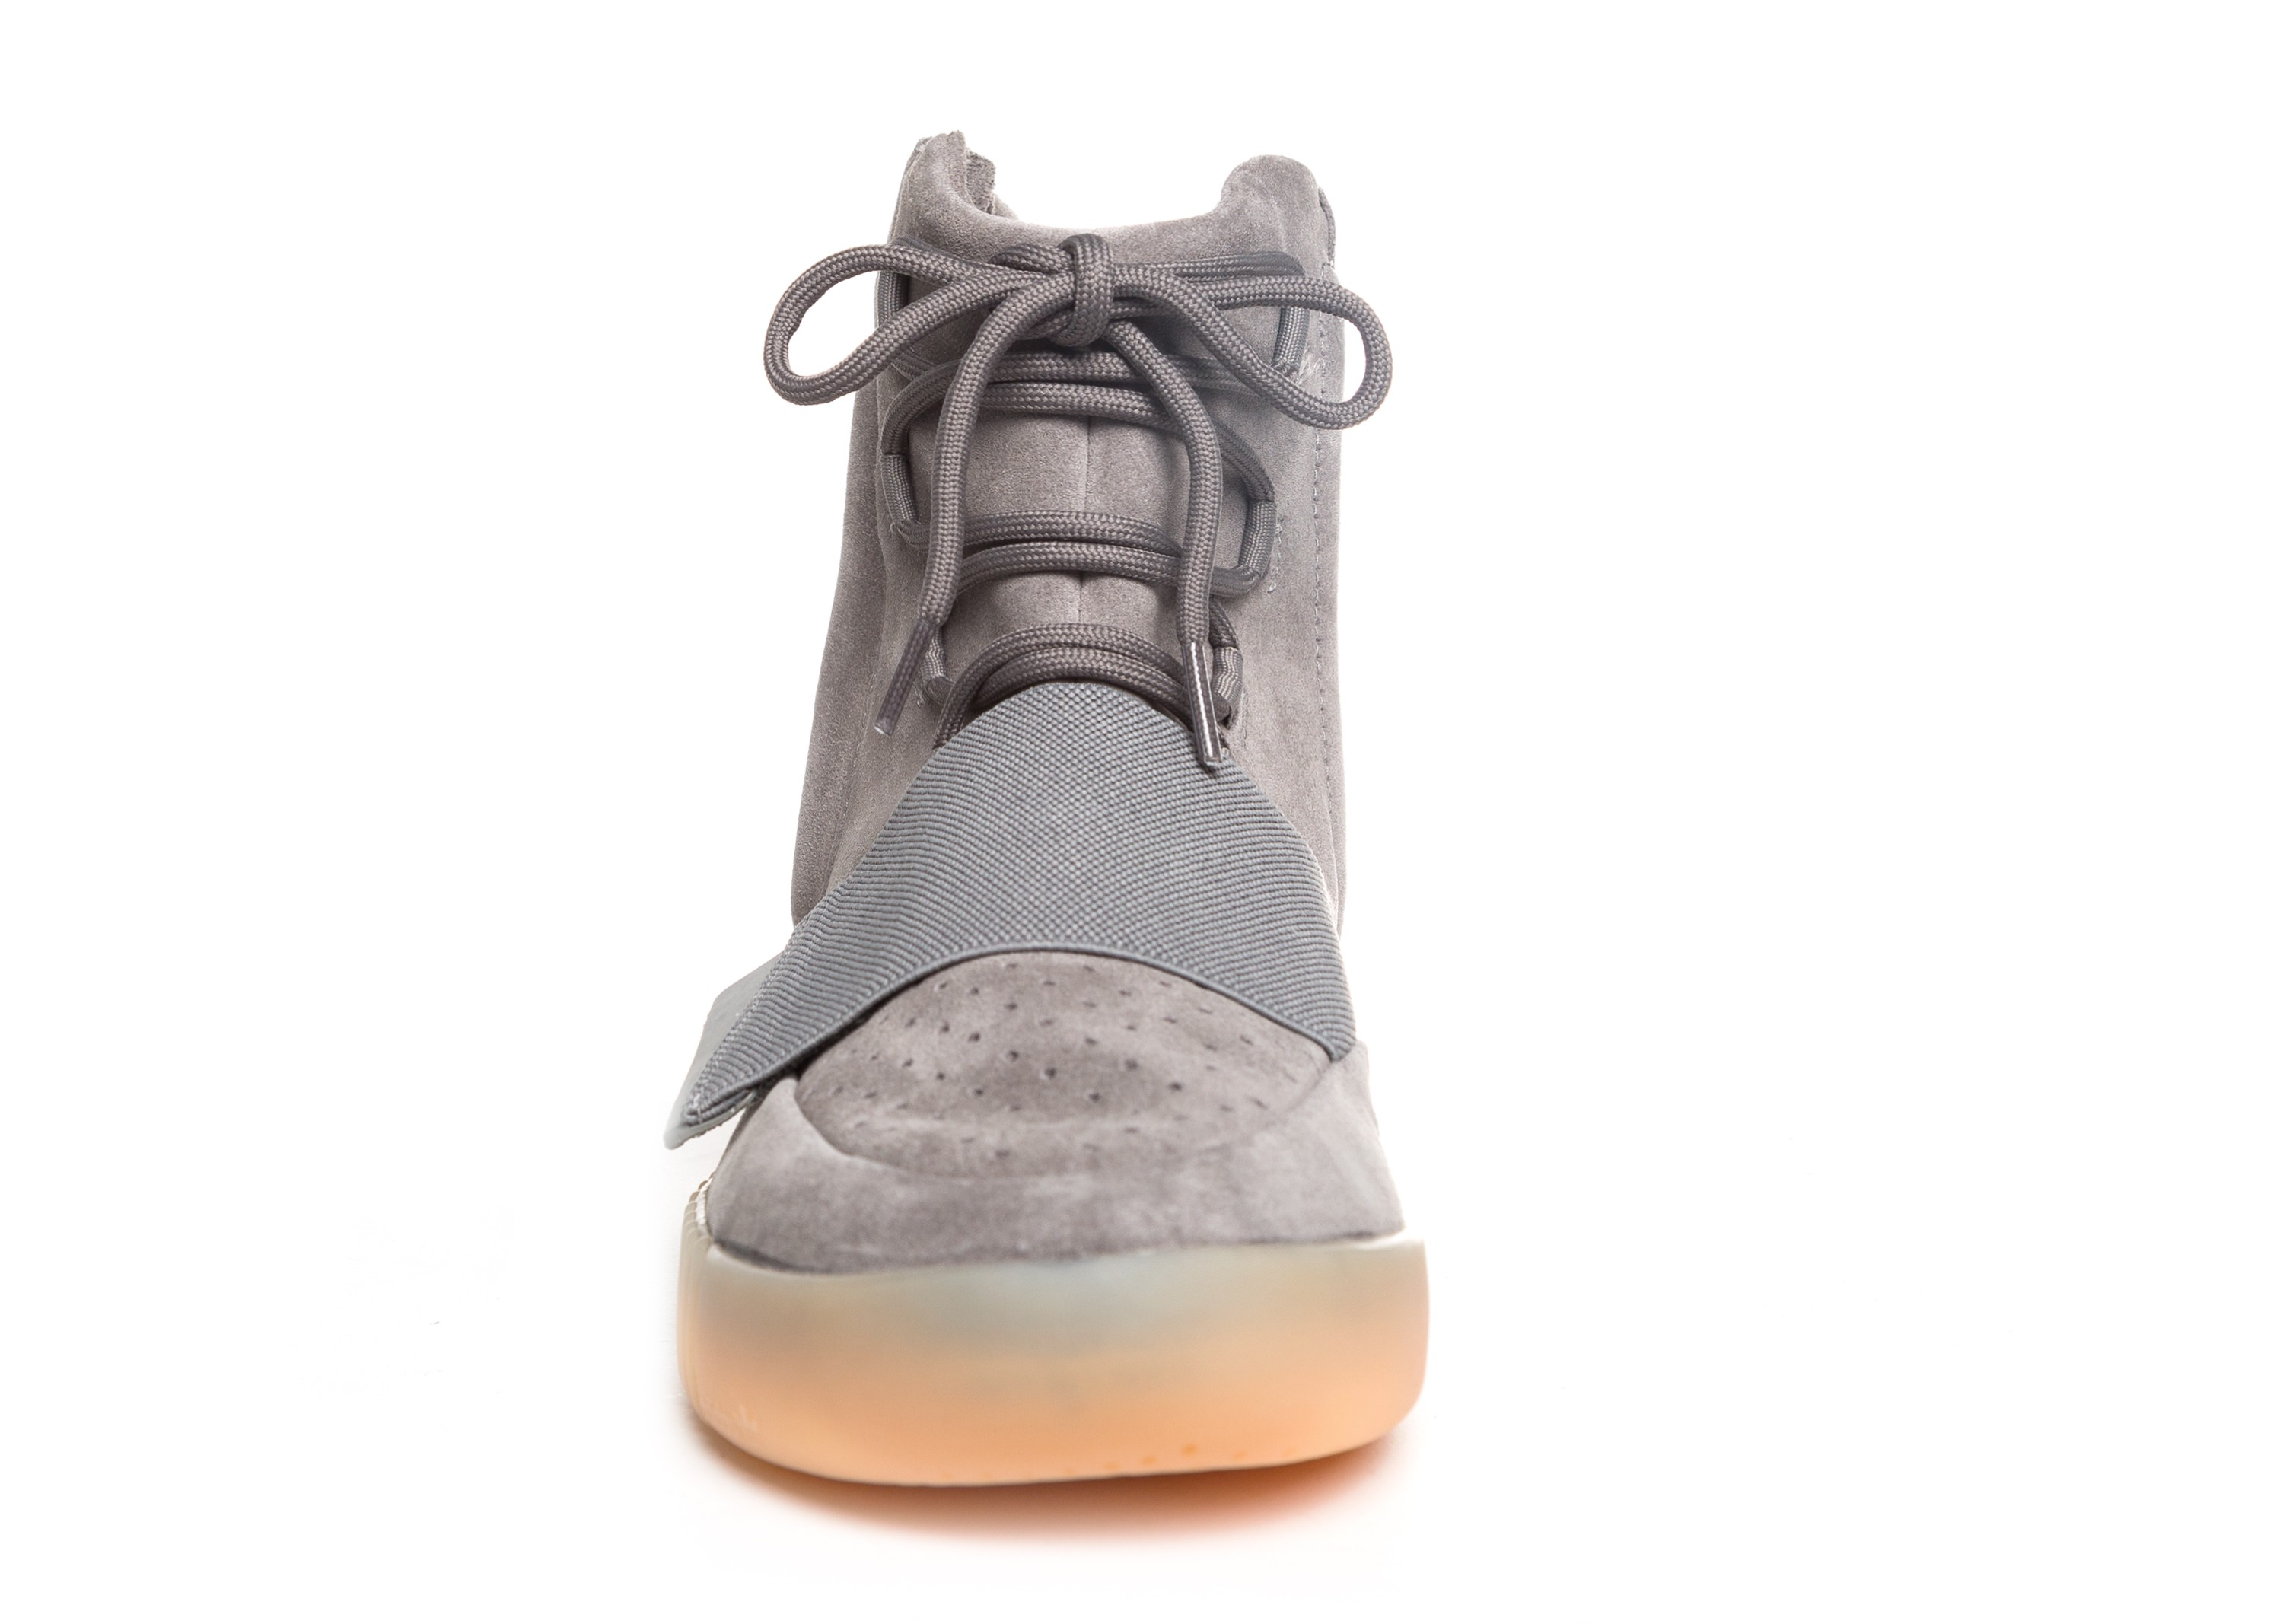 ... release of the Yeezy Season 2  Military Crepe Boots 4504b1530